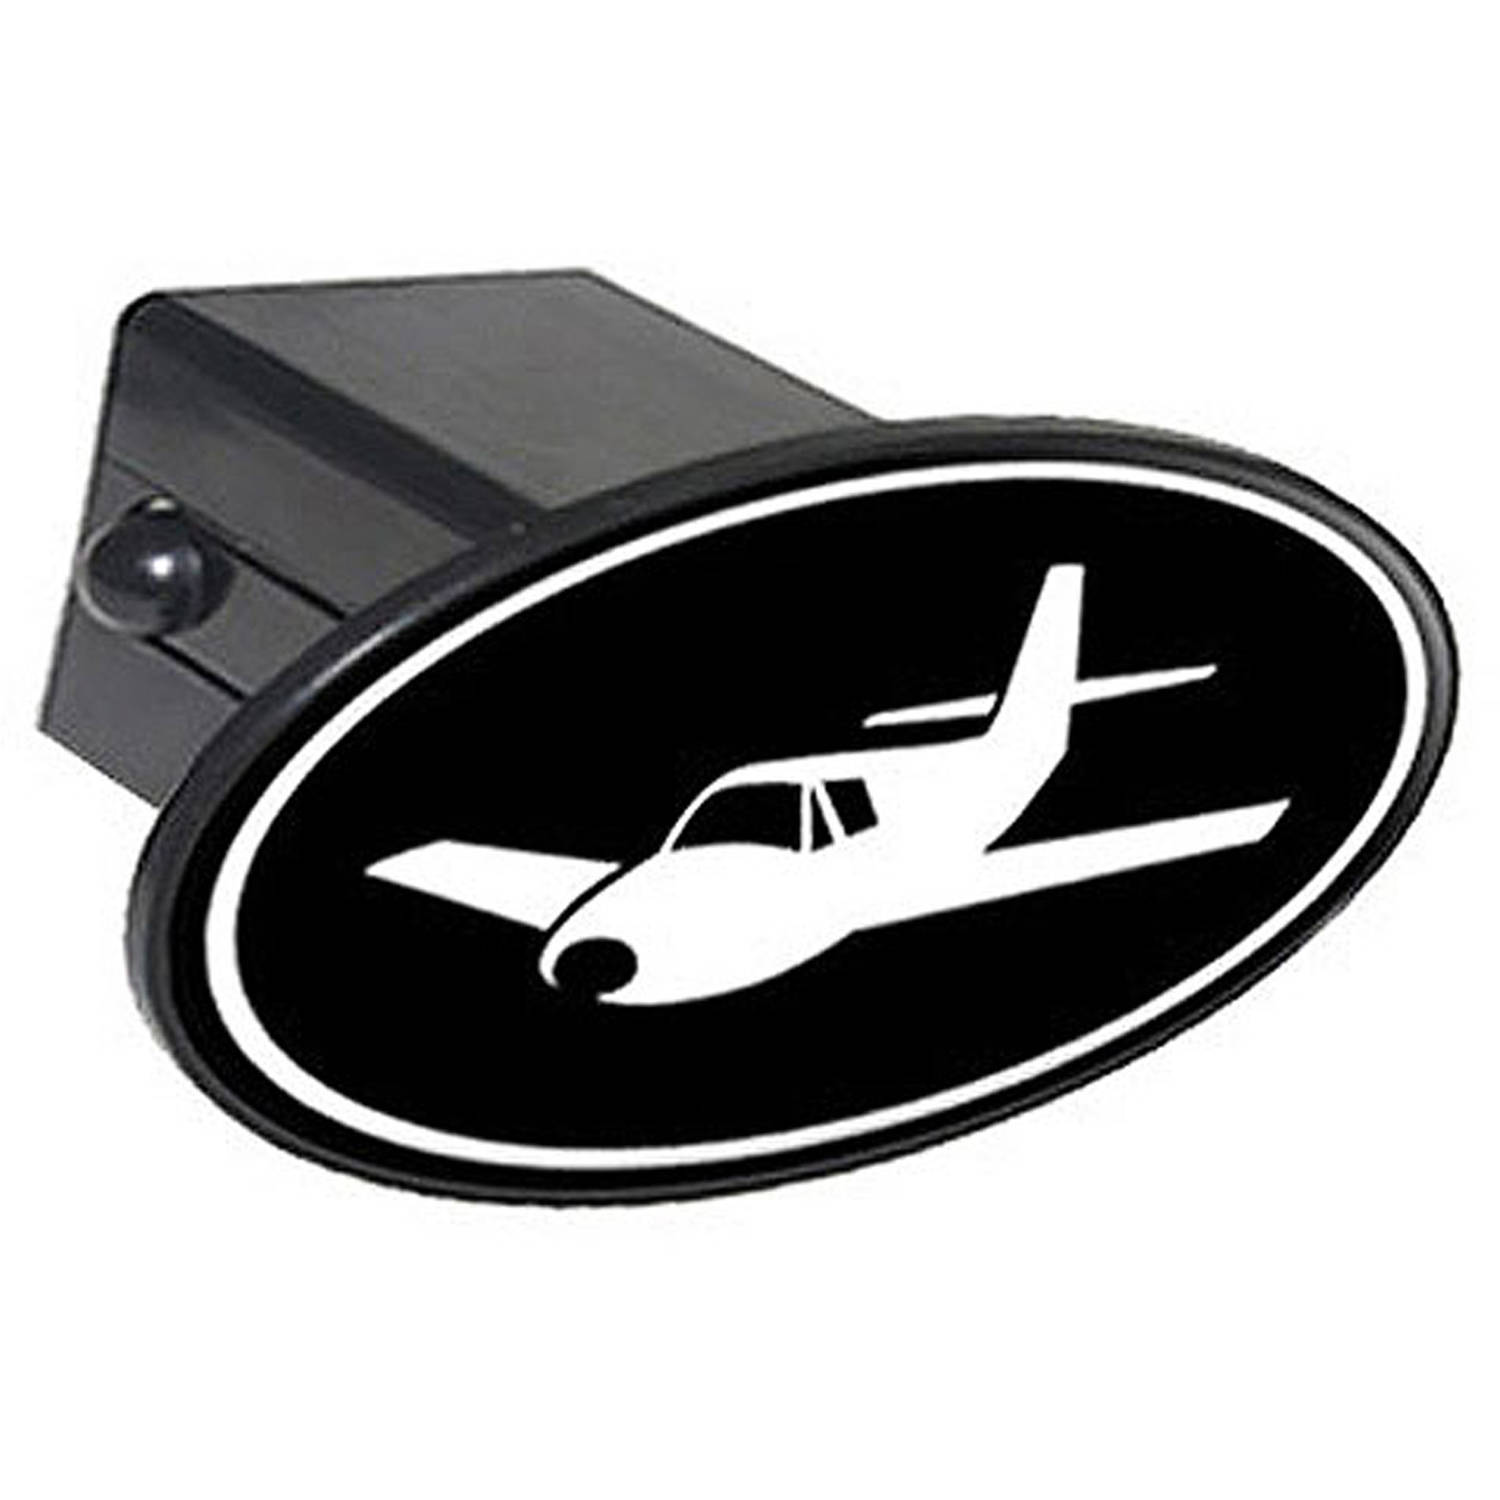 Graphics and More Airplane Tow Trailer Hitch Cover Plug Insert 2